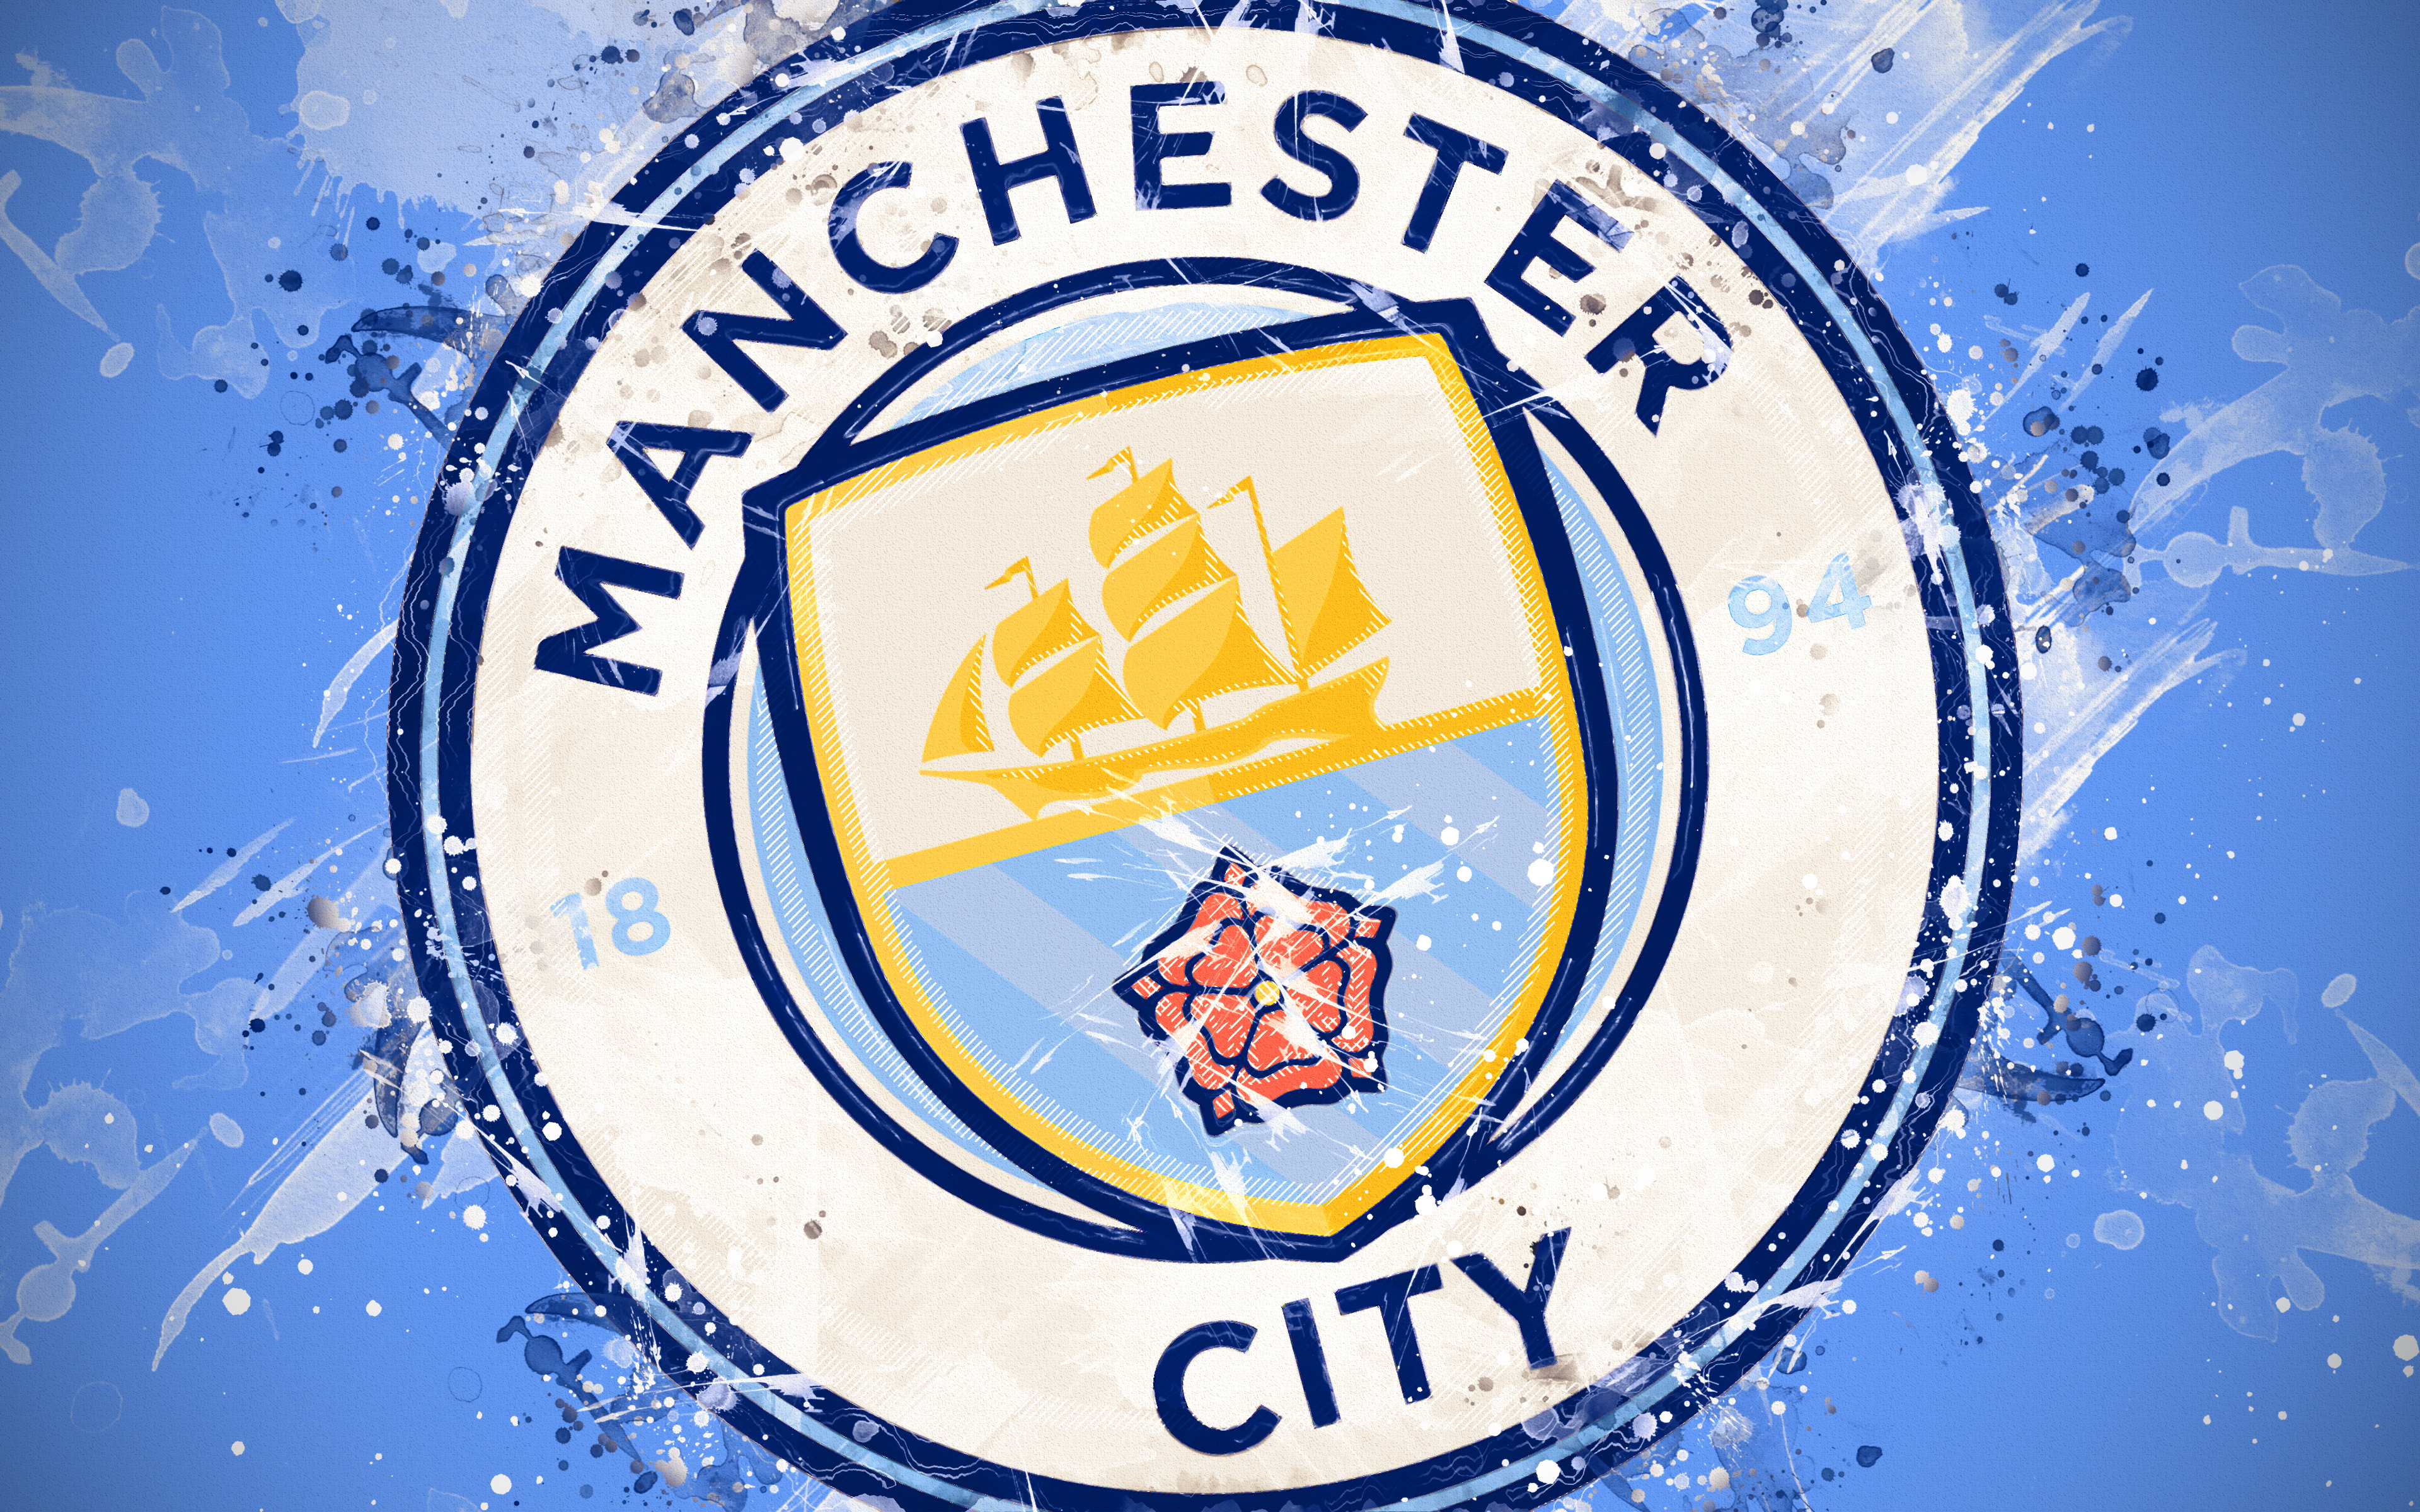 Free Download Manchester City Logo 4k Ultra Hd Wallpaper Background Image 3840x2400 For Your Desktop Mobile Tablet Explore 21 Manchester City Logos Wallpapers Manchester City Logos Wallpapers Manchester City